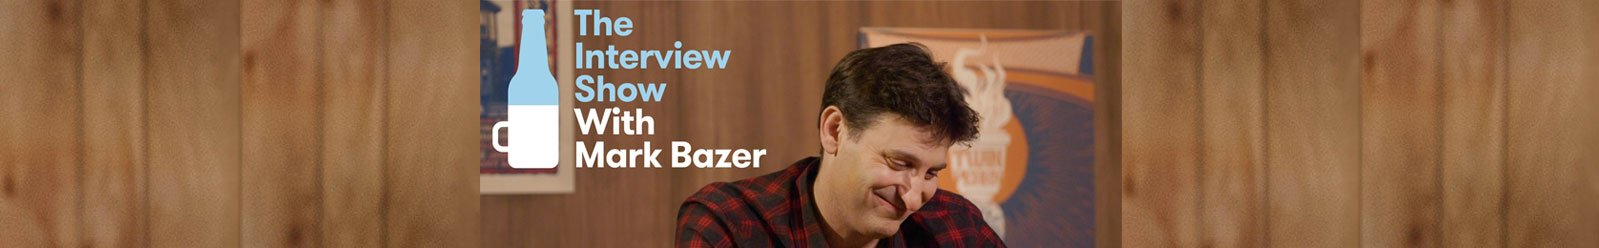 The Interview Show with Mark Bazer